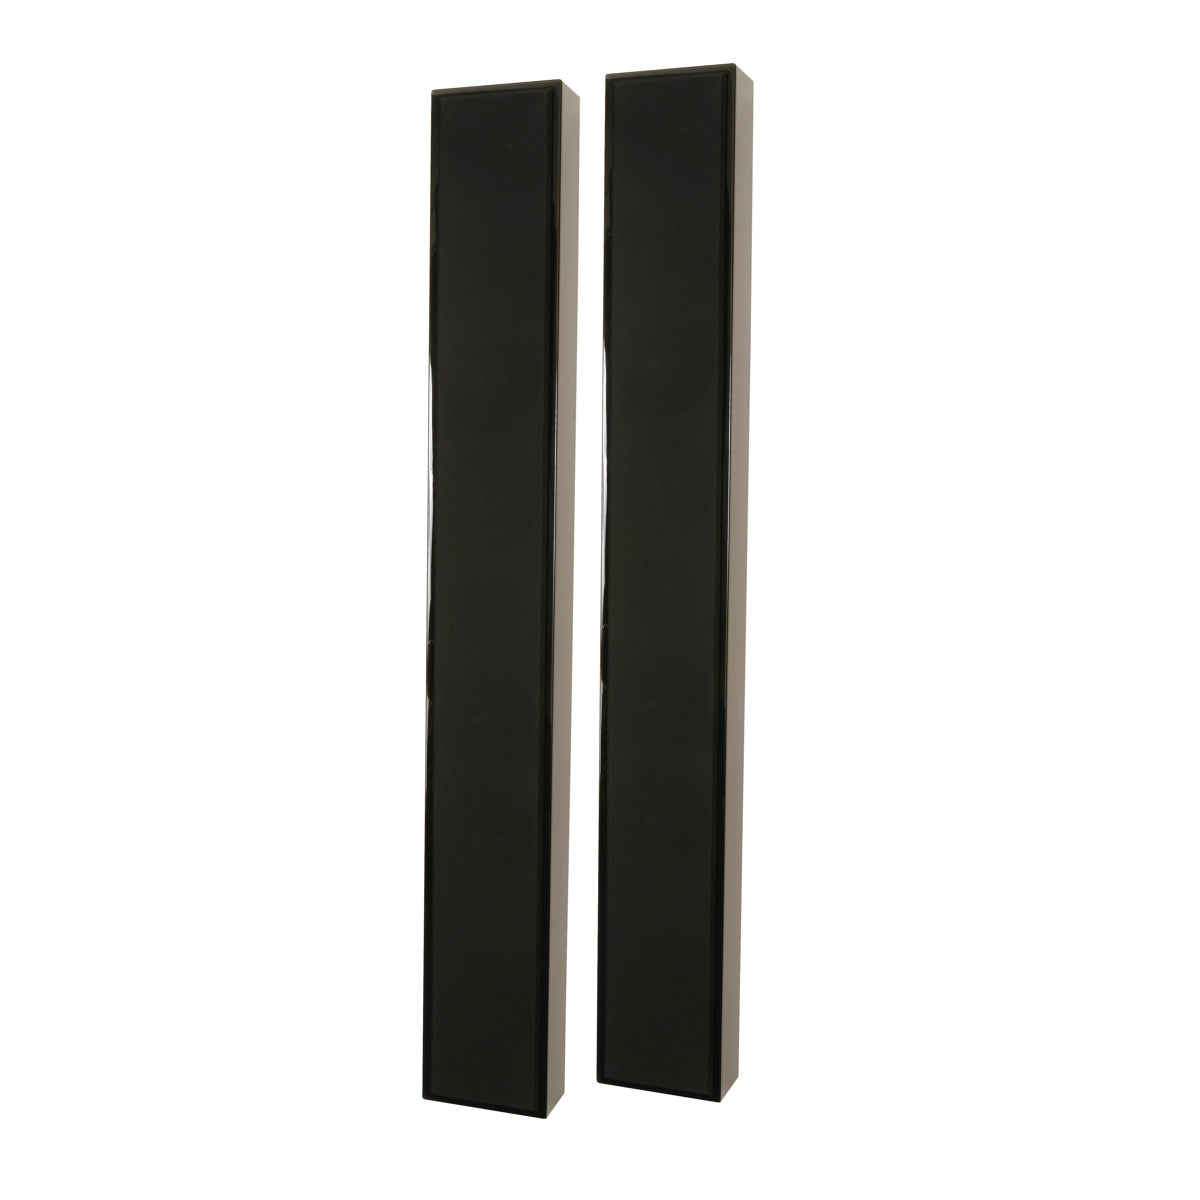 DLS Flatbox Slim Large XL On wall speaker - Pair, DLS, On Wall Speaker - AVStore.in